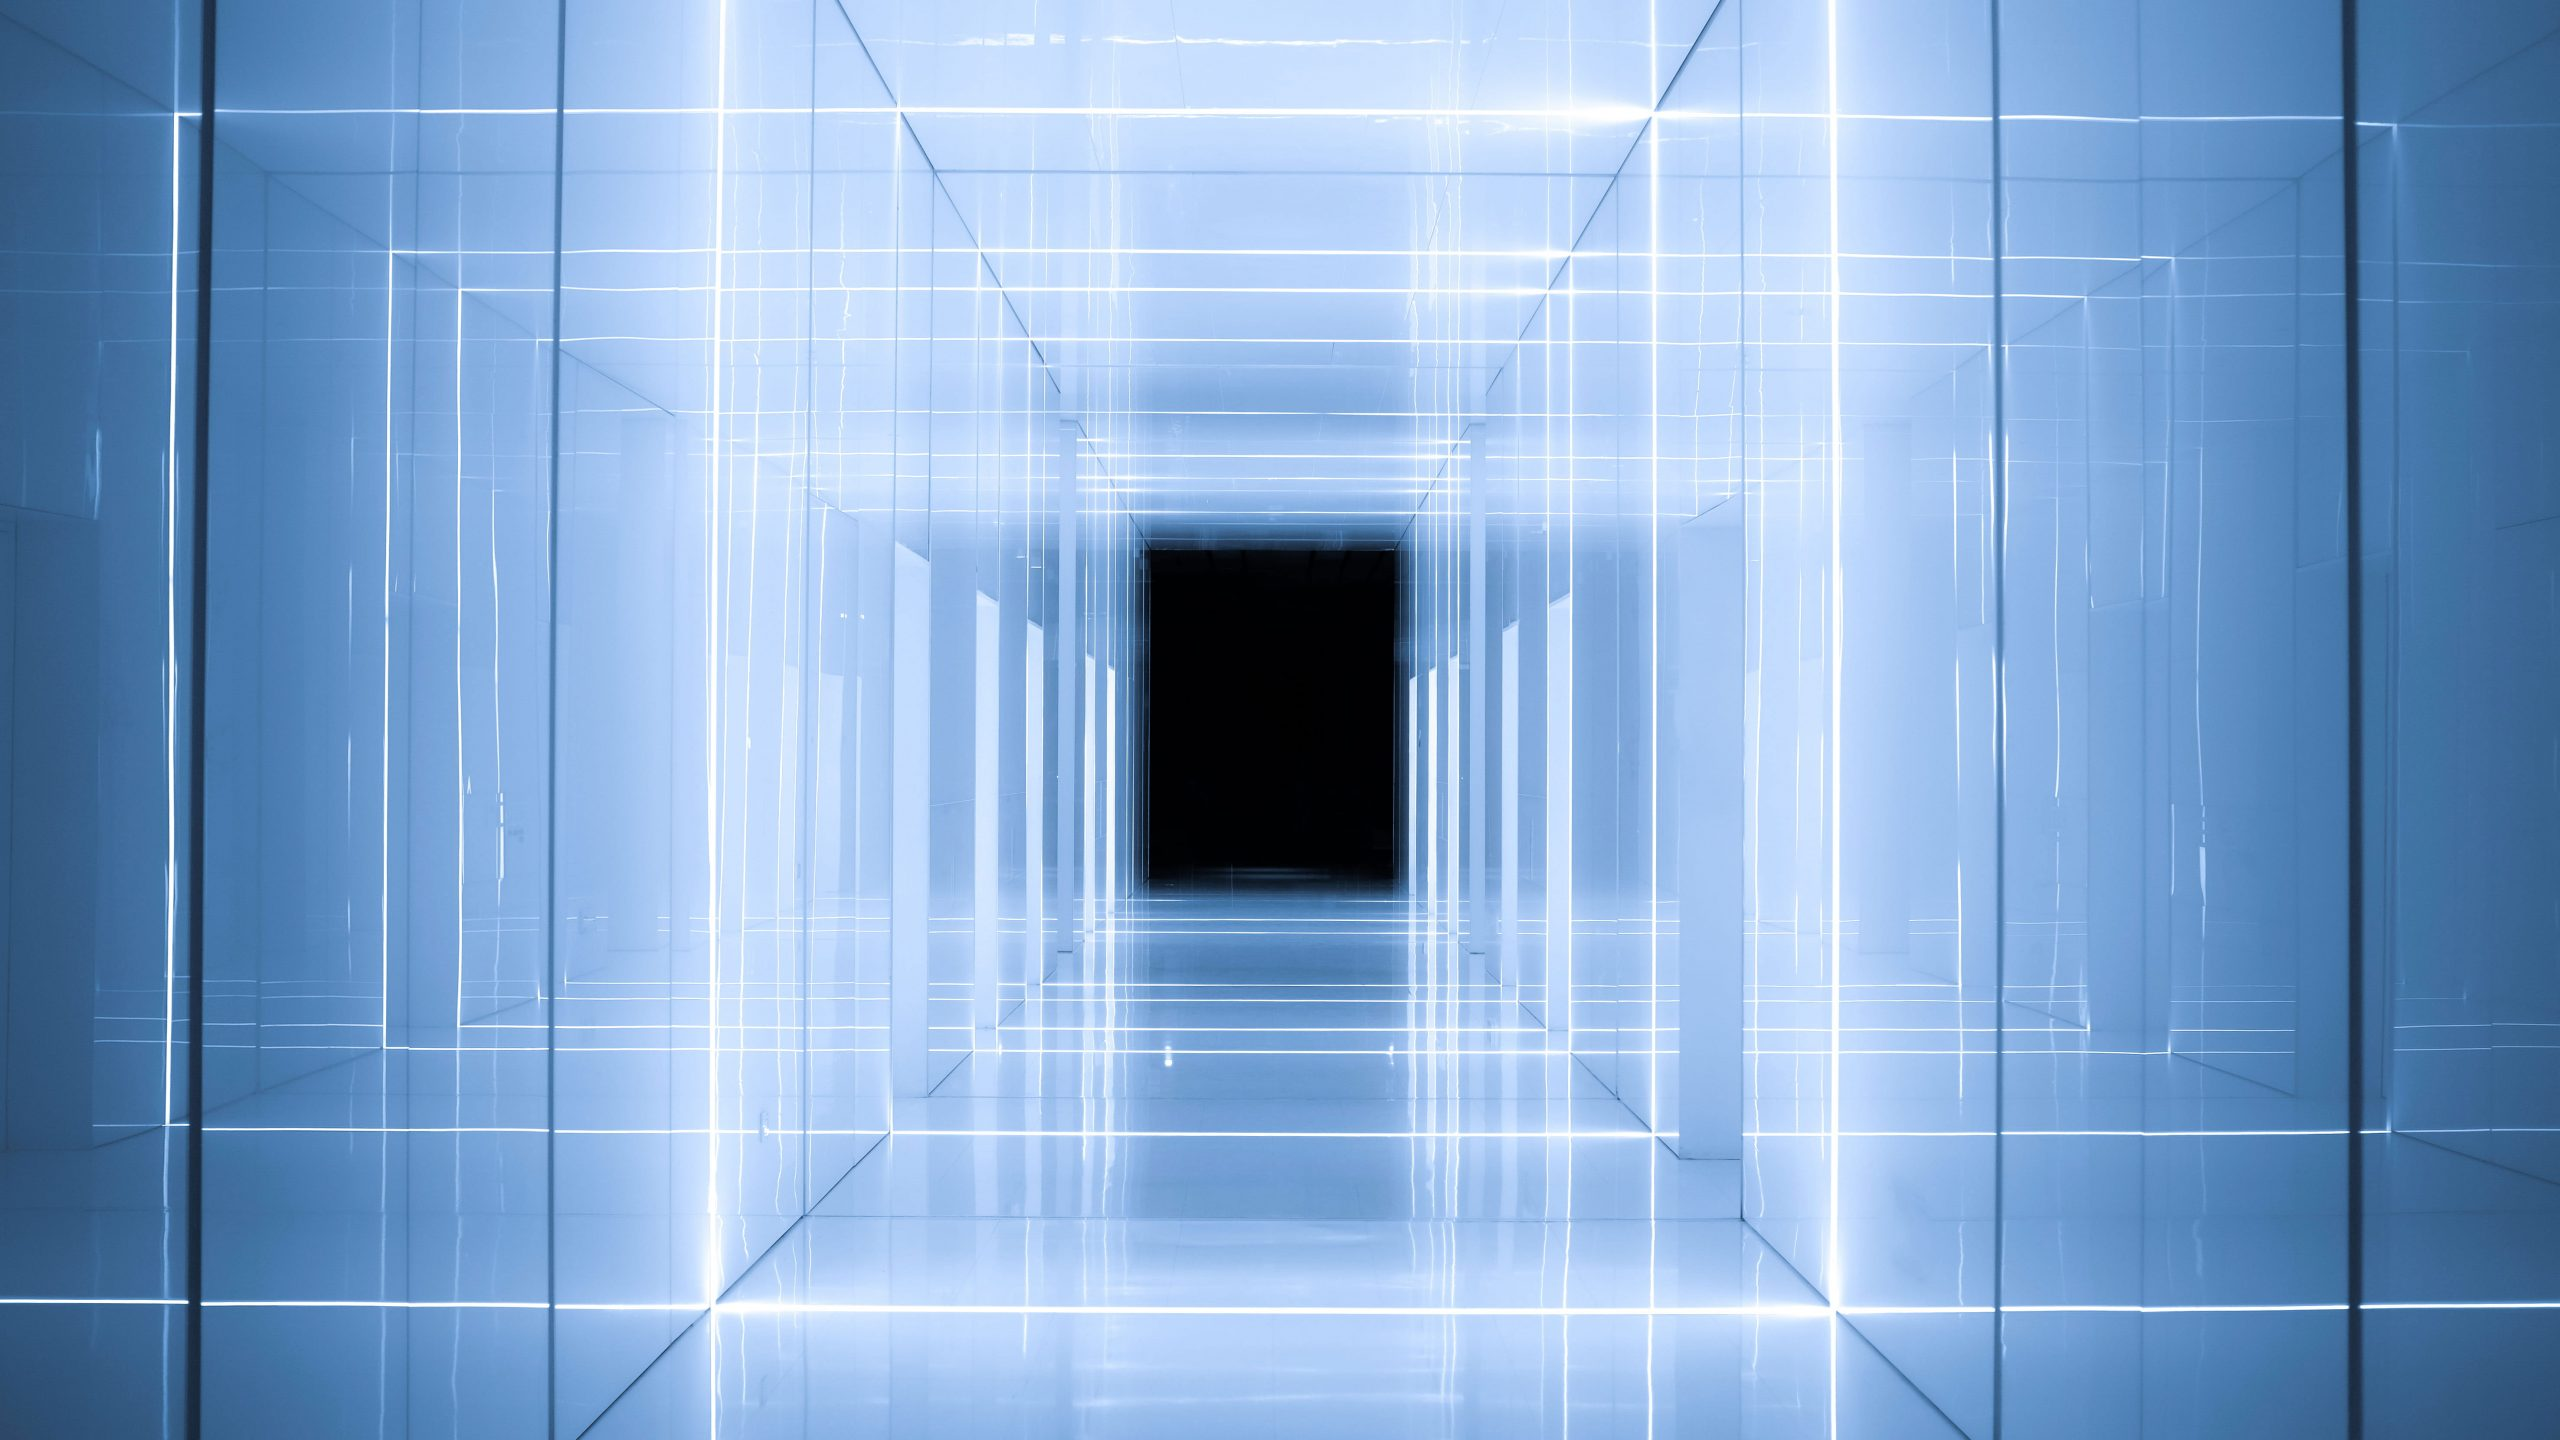 Tons of awesome aesthetic car wallpapers to download for free. Mirrored pathway wallpaper, infinity mirror, hallway, blue